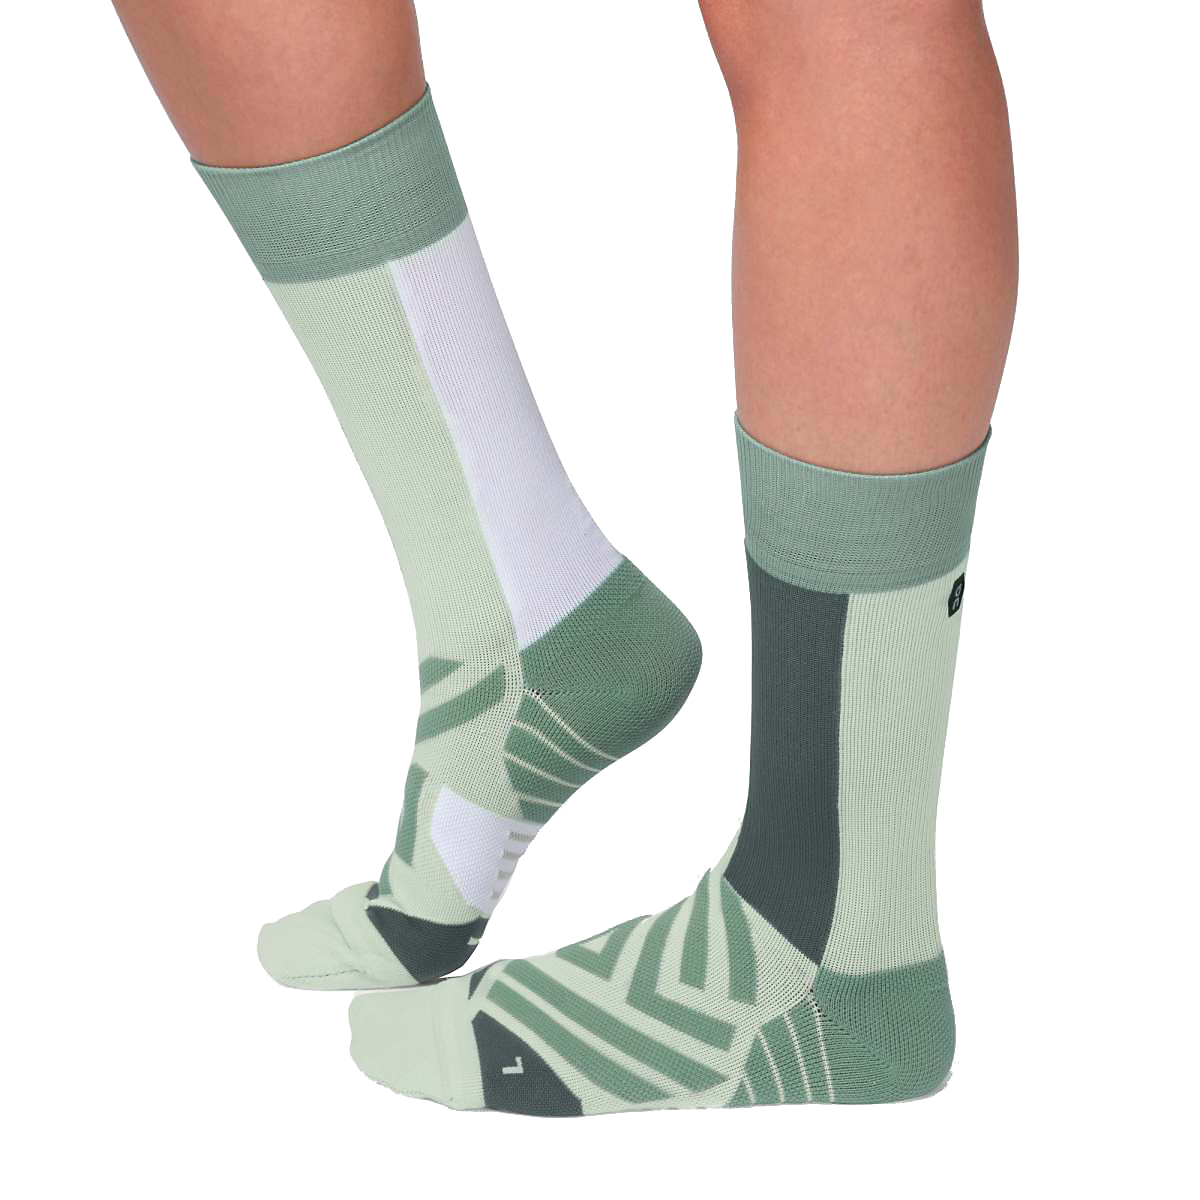 Women's On High Sock - Color: Mineral/White - Size: XS, Mineral/White, large, image 2